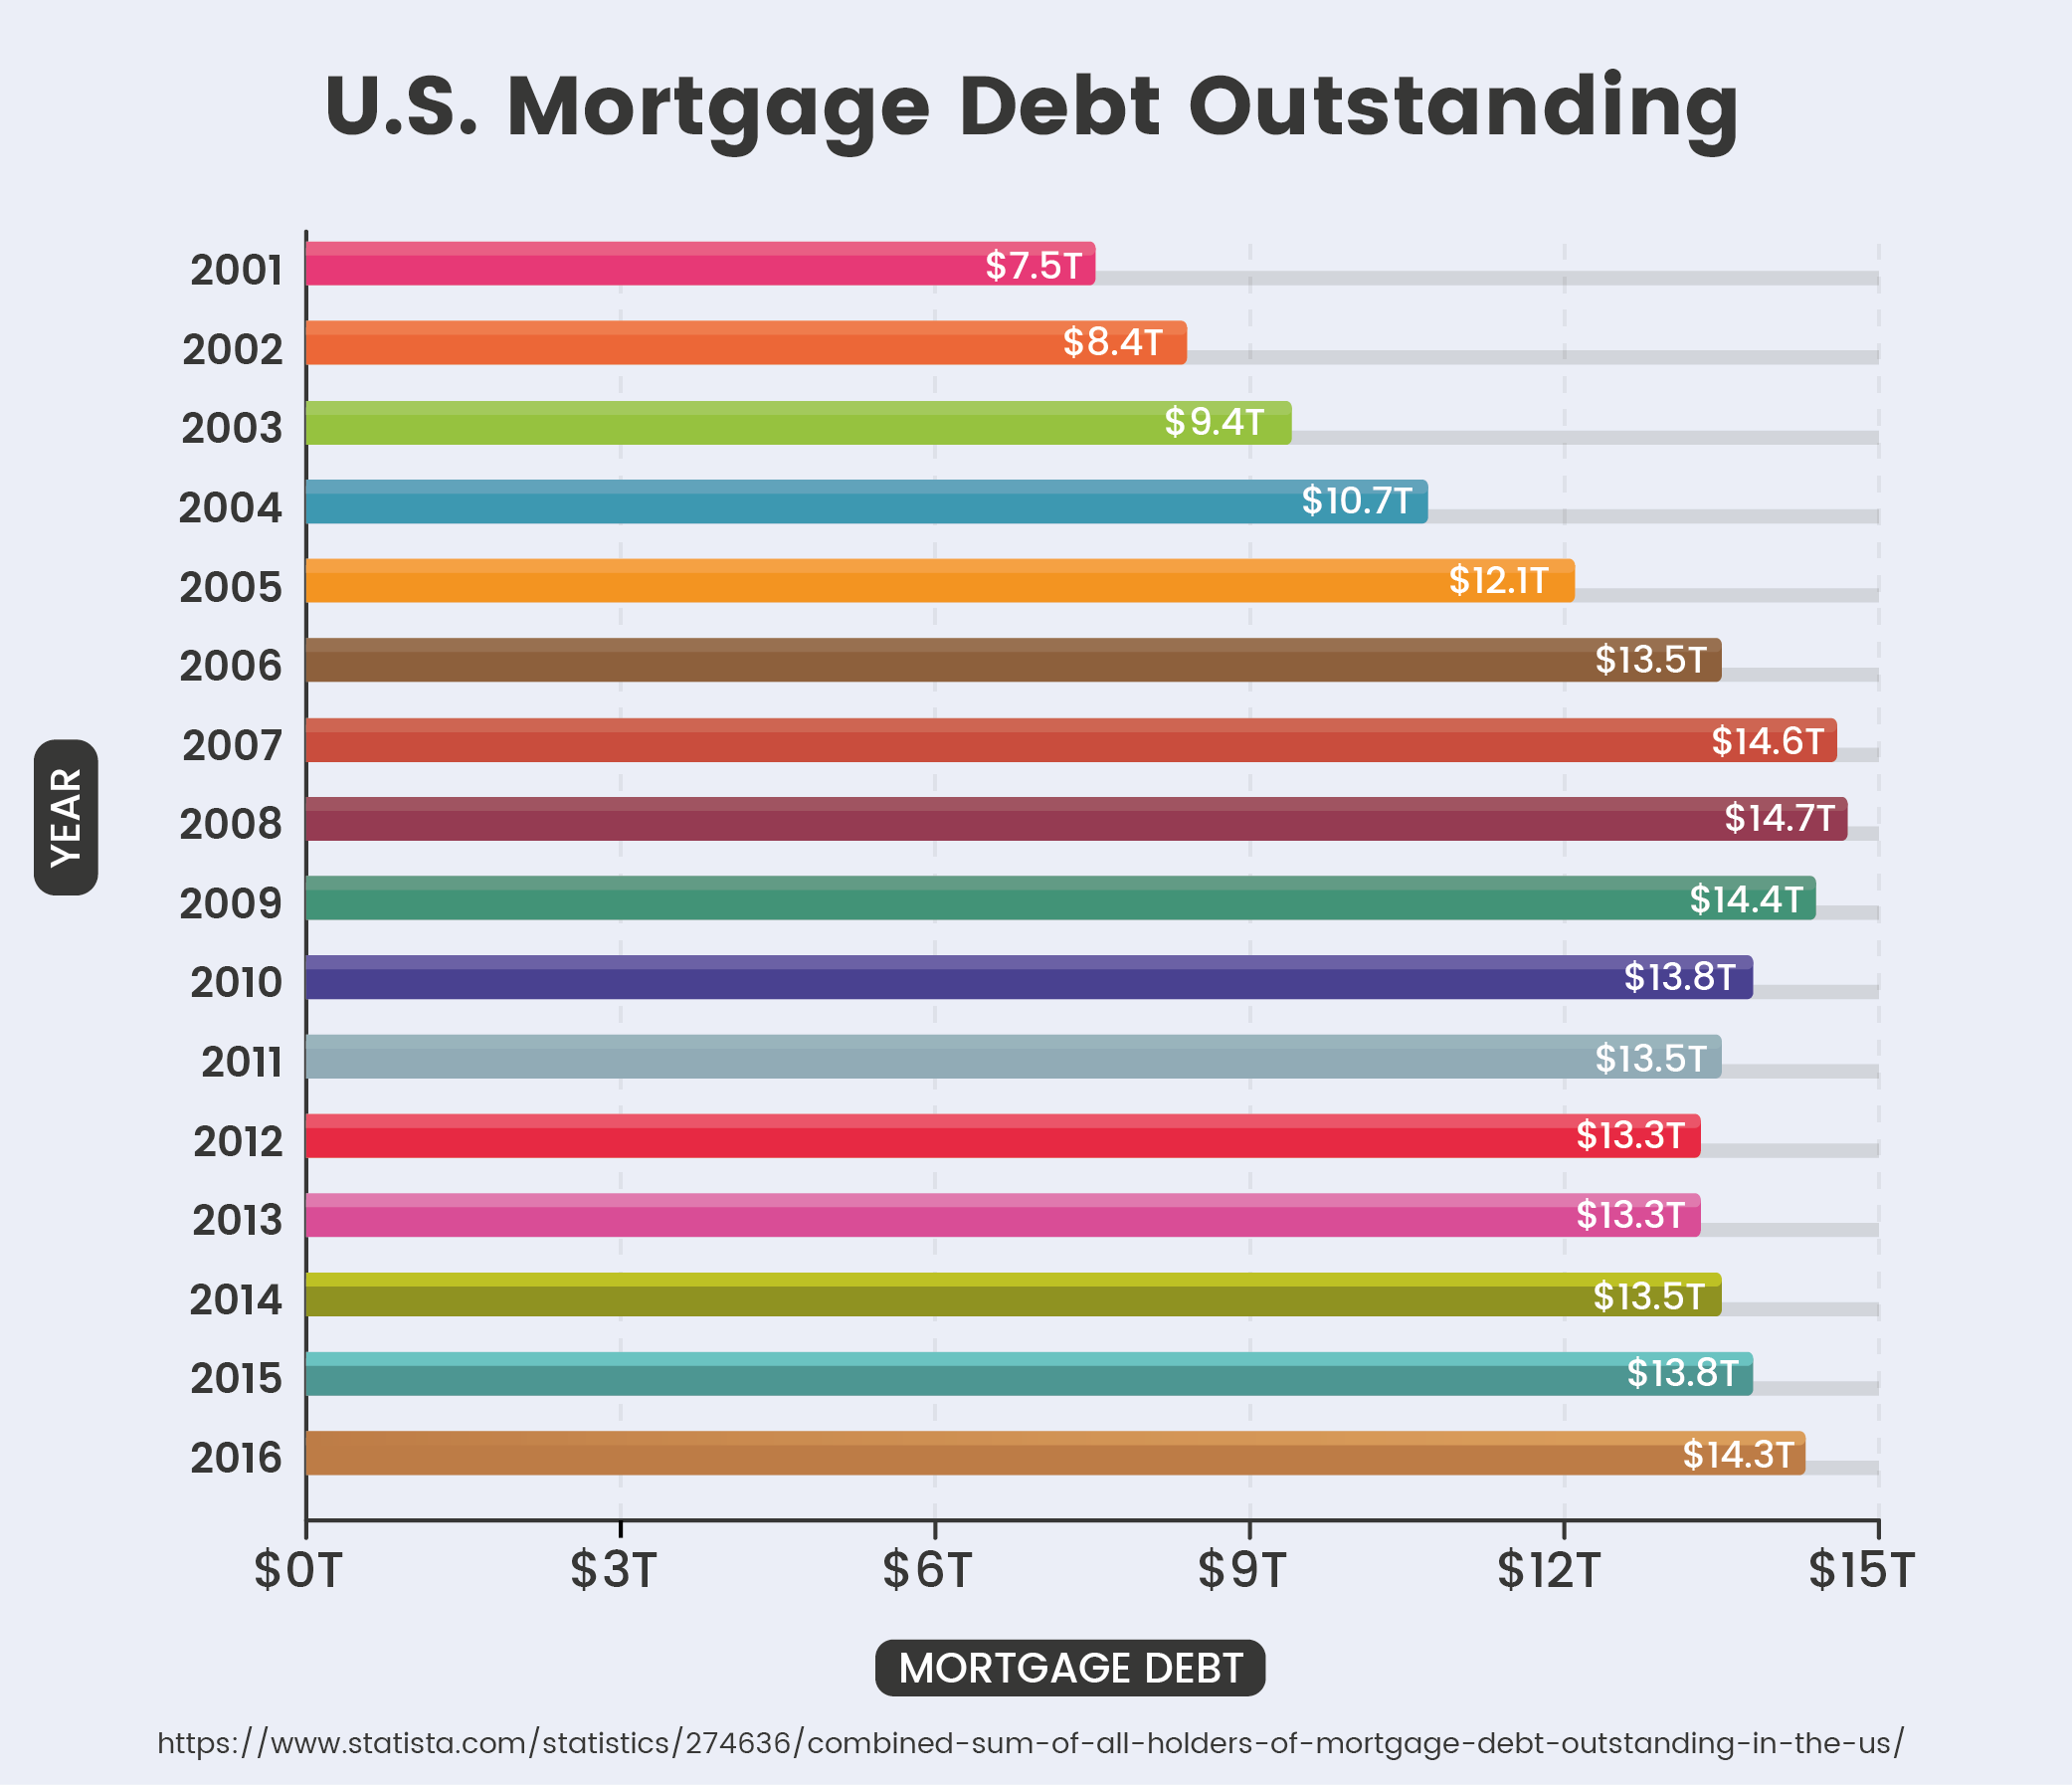 U.S. Mortgage Debt Outstanding